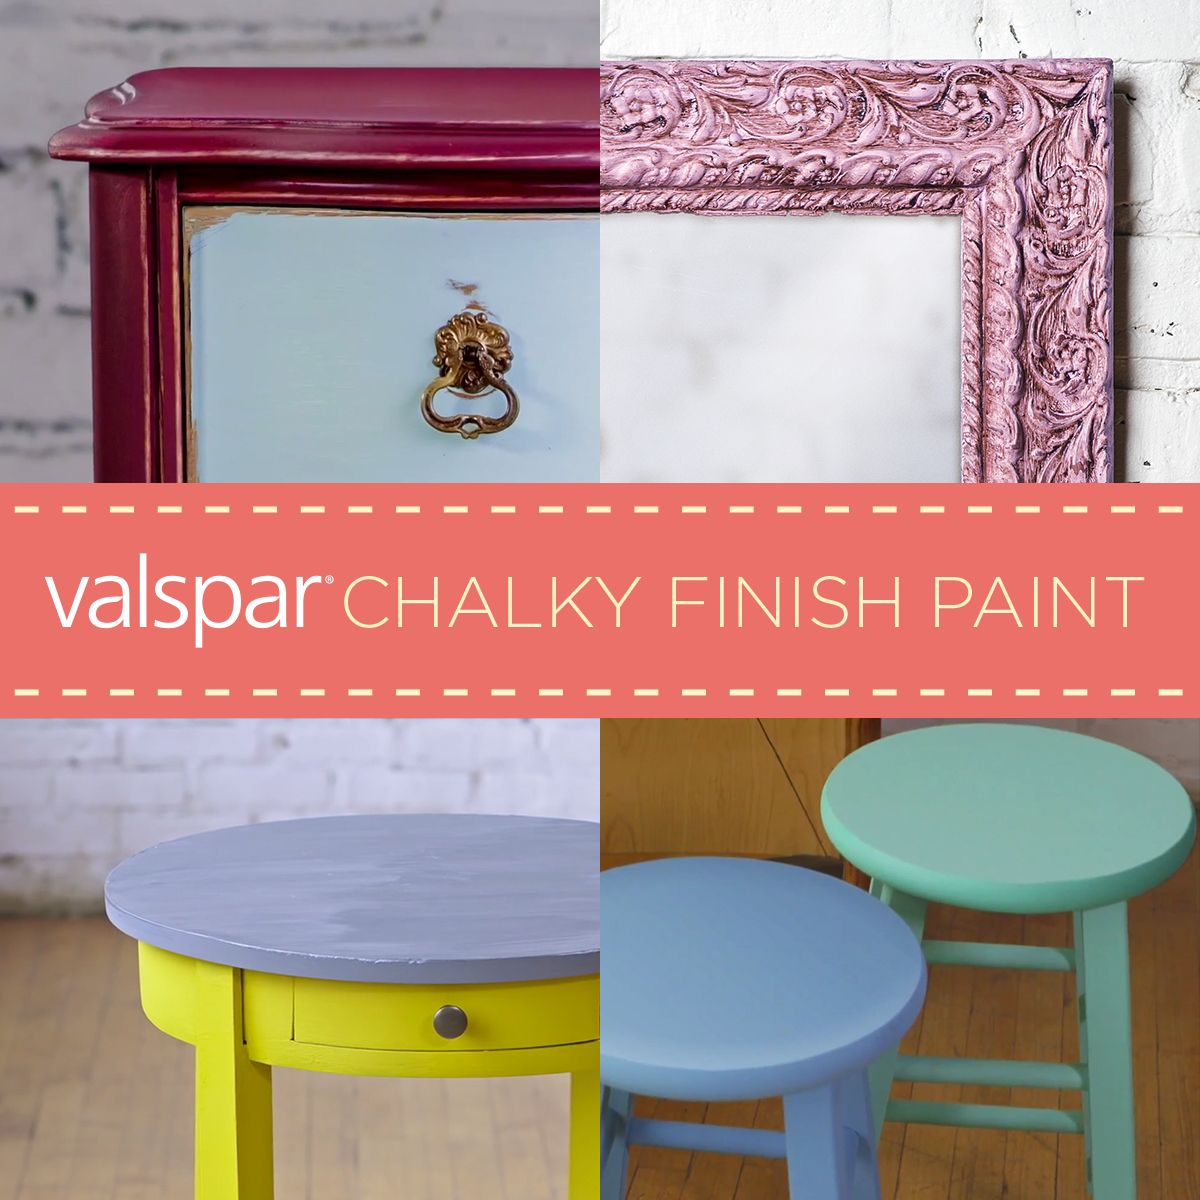 valspar chalky finish paint is a durable decorative paint that s velvety to the touch and matte. Black Bedroom Furniture Sets. Home Design Ideas